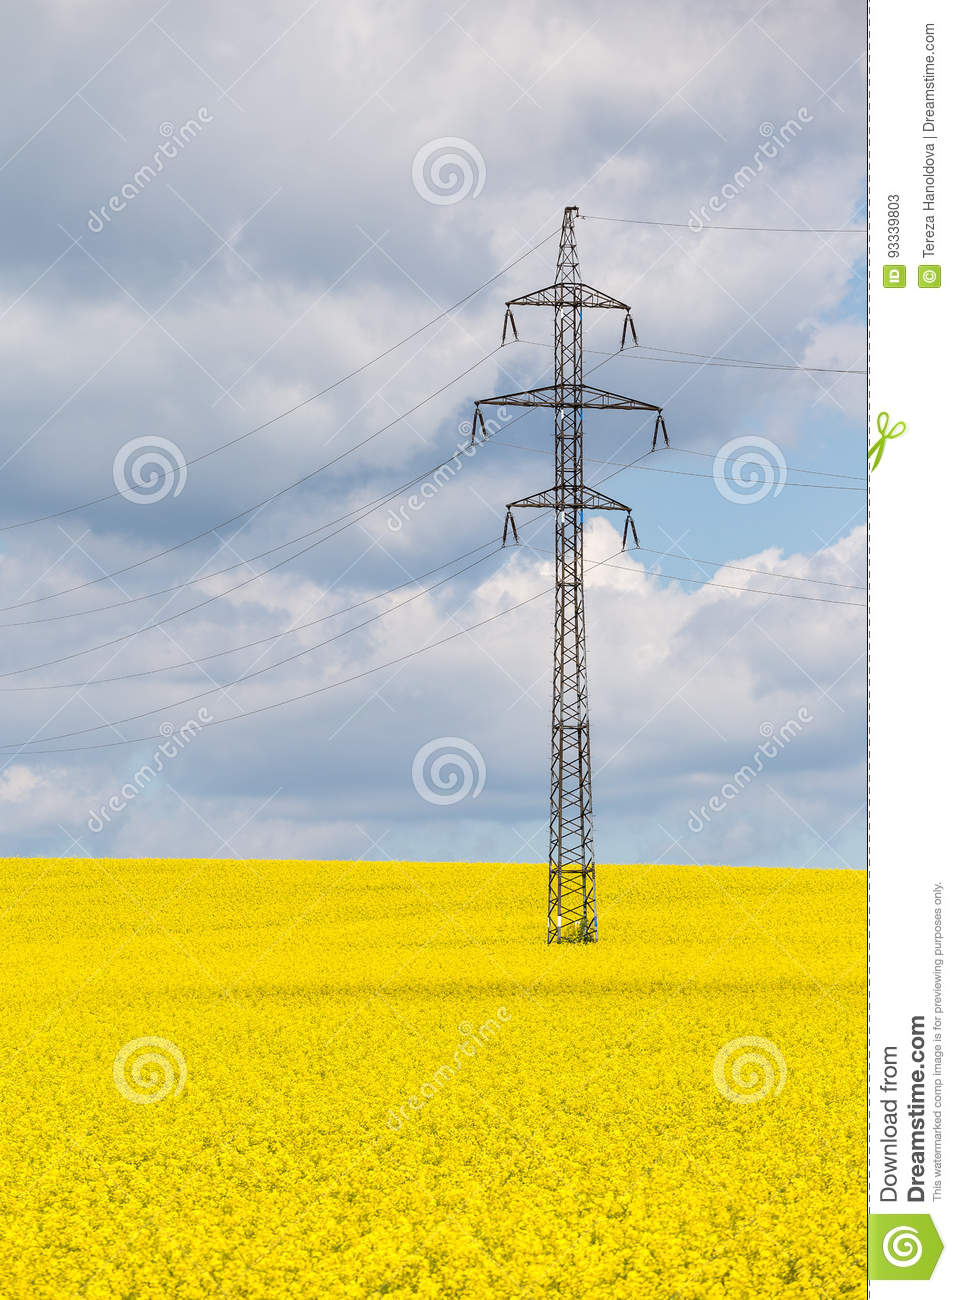 High voltage buses in a yellow field. Nature and technology